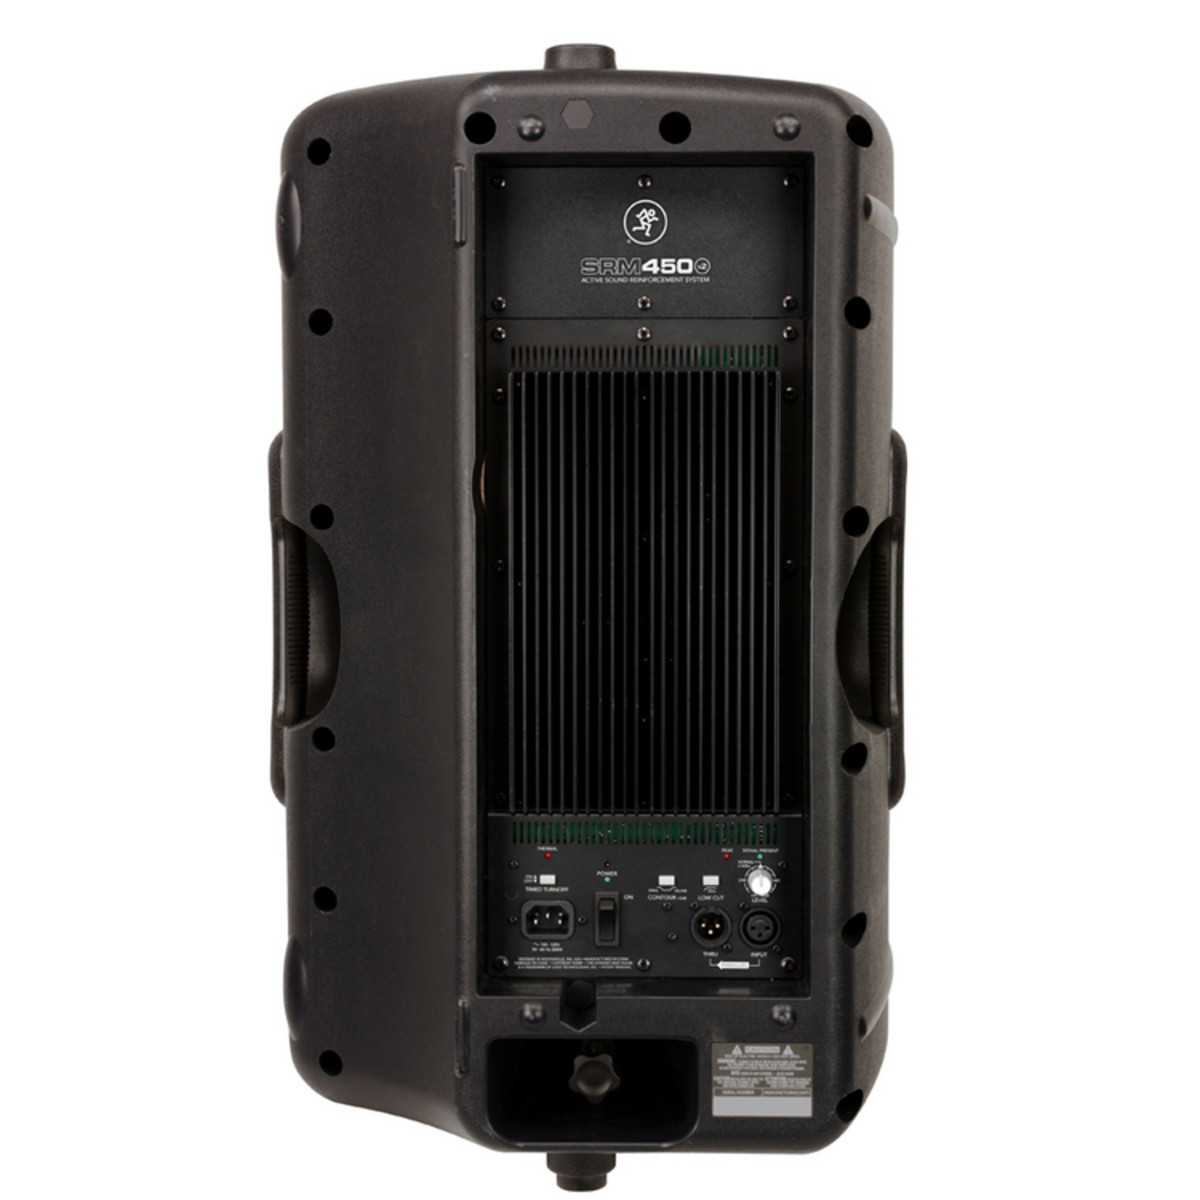 mackie srm450 v2 active pa speaker nearly new at gear4music. Black Bedroom Furniture Sets. Home Design Ideas